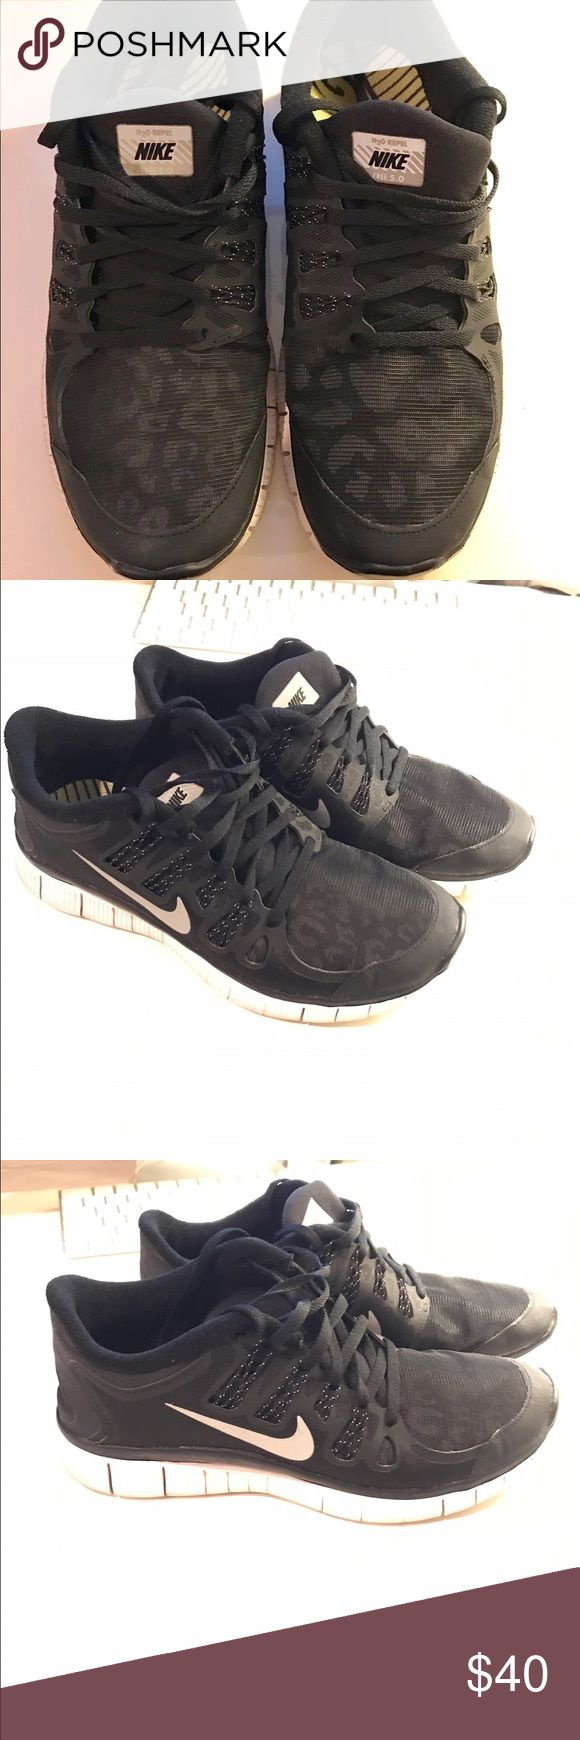 H20 Black Leopard Repel Nike Free 5.0 Black Leopard Nike free runs 5.0 with Metallic Nike swoosh. Gently worn. Great condition. Size 7.5 Nike Shoes Sneakers